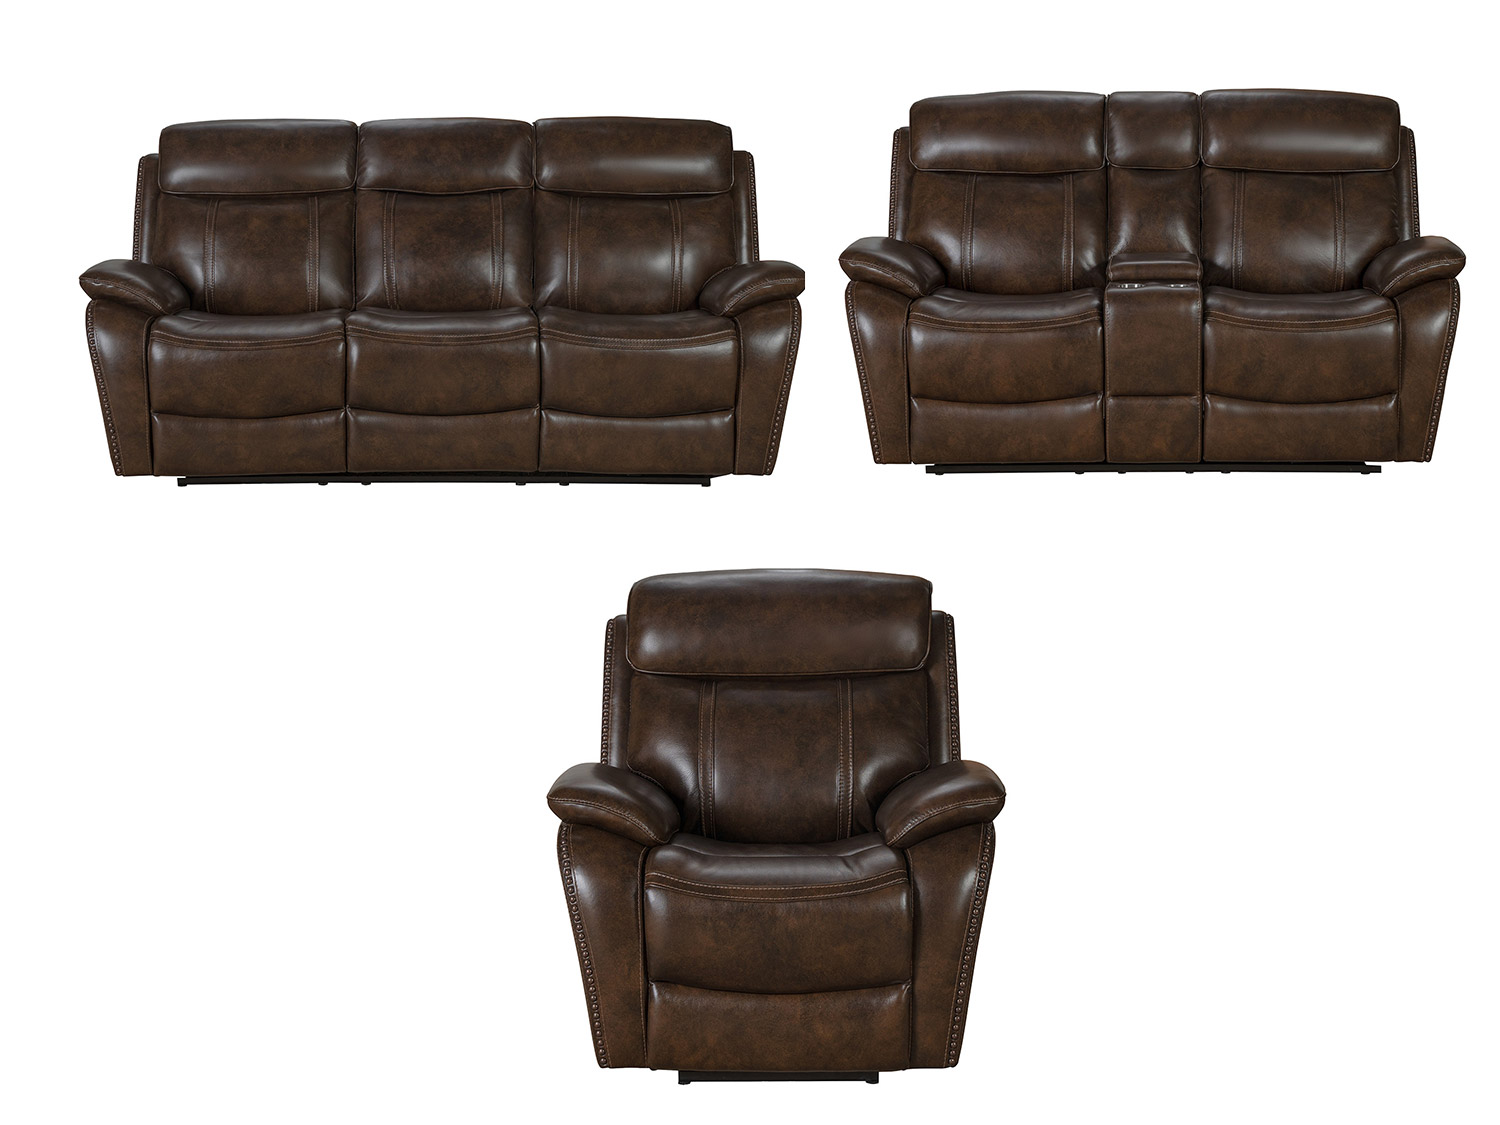 Barcalounger Sandover Power Reclining Sofa Set with Power Head Rests and Lumbar - Tri-Tone Chocolate/Leather match